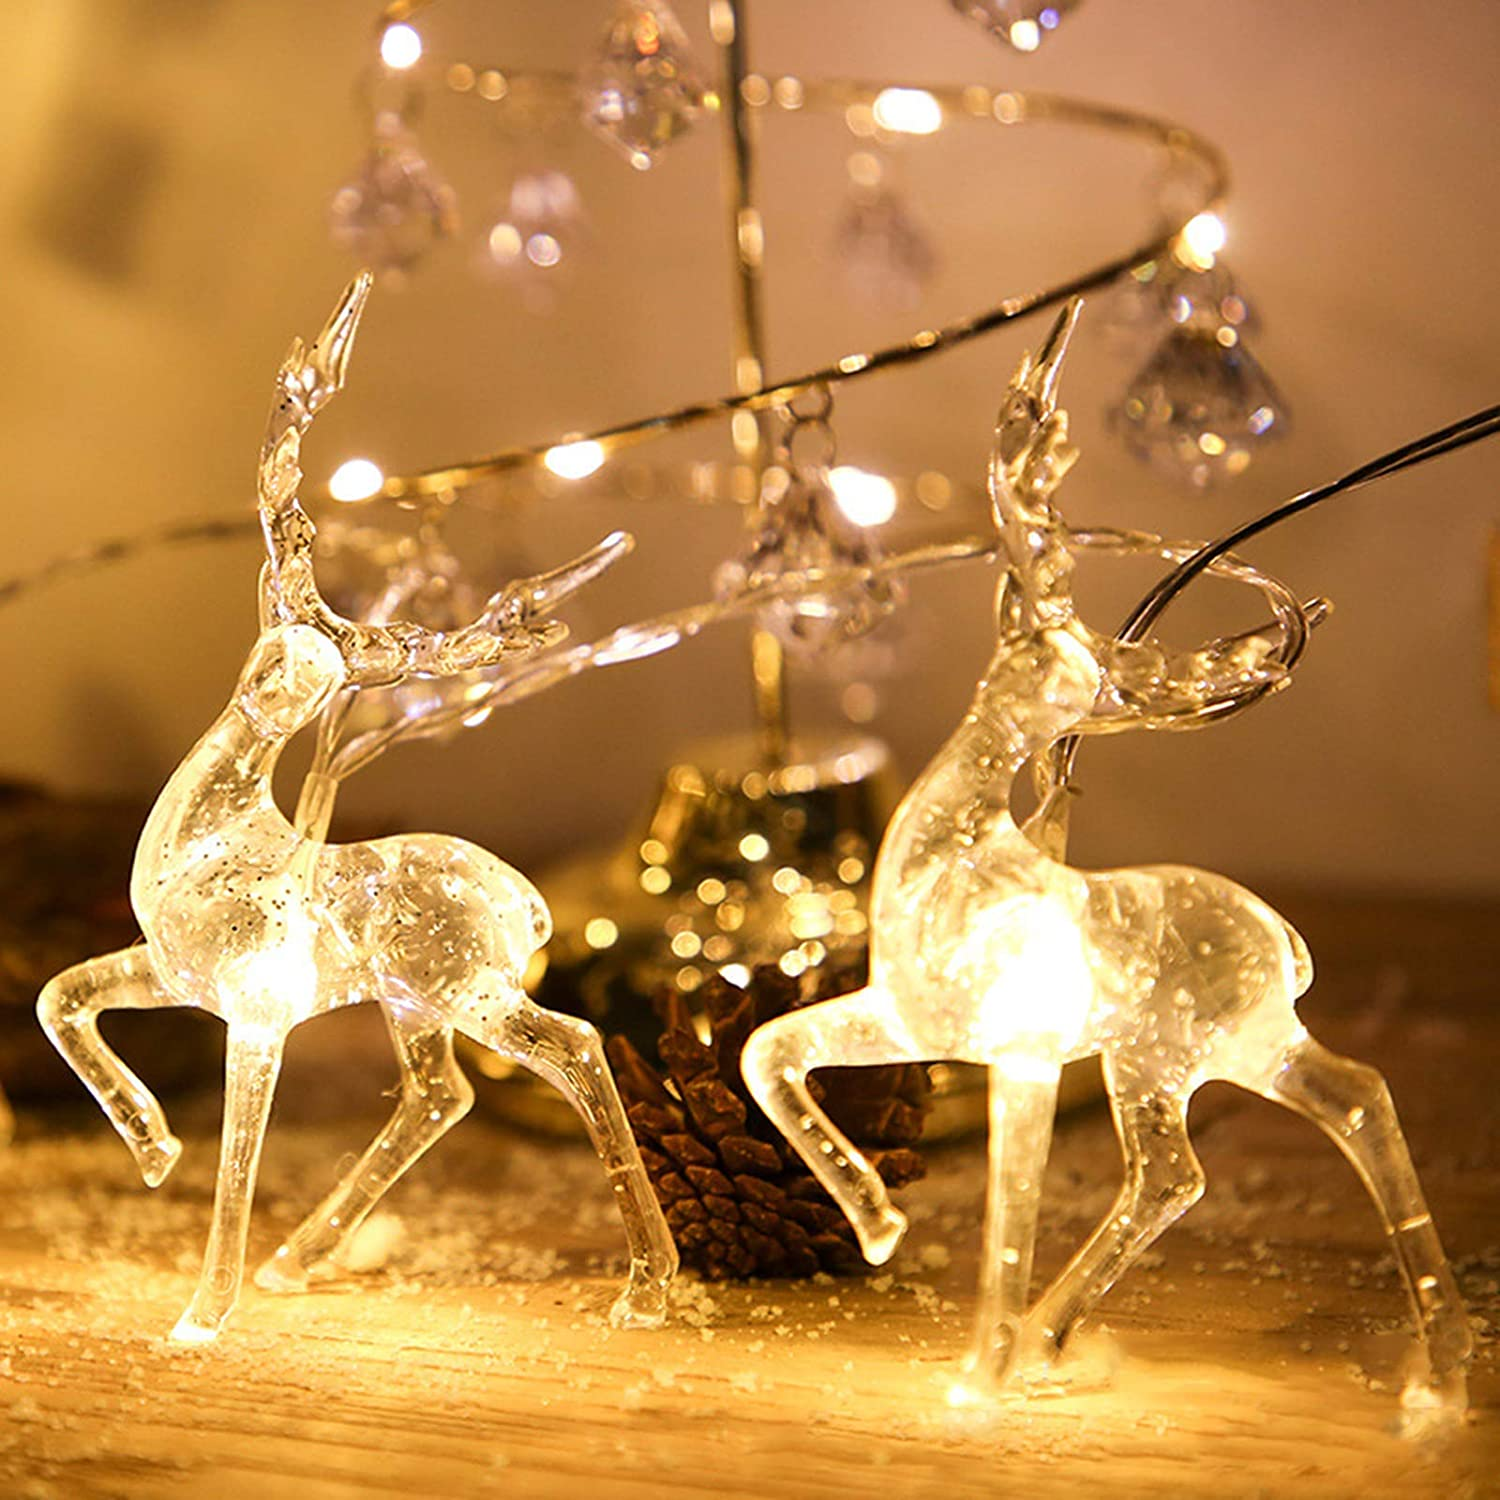 Christmas Lights Reindeer String Lights -10 ft 20 LED Warm White Battery Operated Christmas Decorations for Bedroom Mantel Doorway Tree Tent Indoor Outdoor Thanksgiving Decor (10 ft 20 LED)